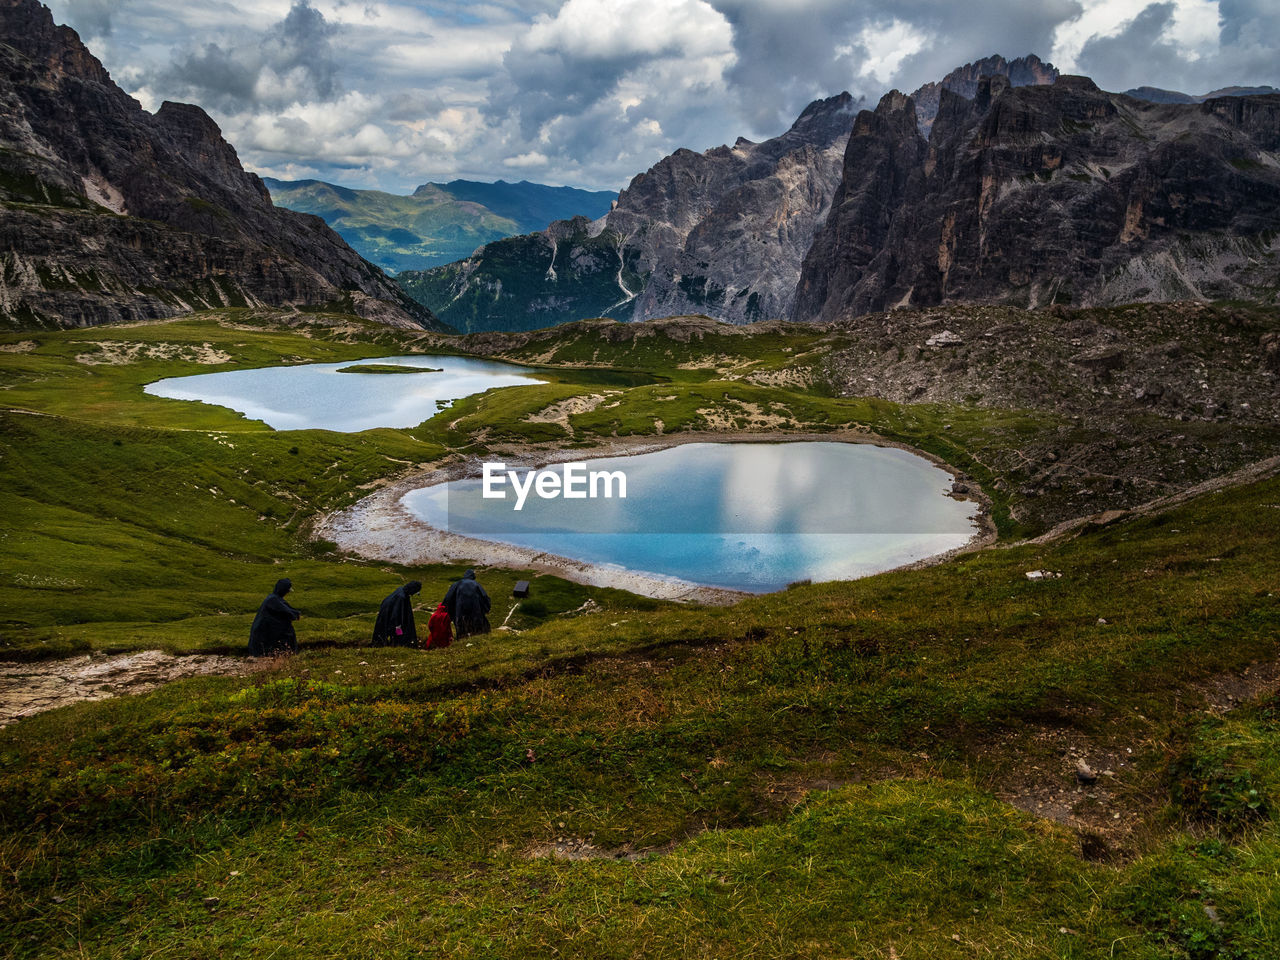 mountain, scenics - nature, beauty in nature, water, leisure activity, lake, nature, day, real people, cloud - sky, hiking, mountain range, sky, activity, environment, people, tranquil scene, non-urban scene, travel, outdoors